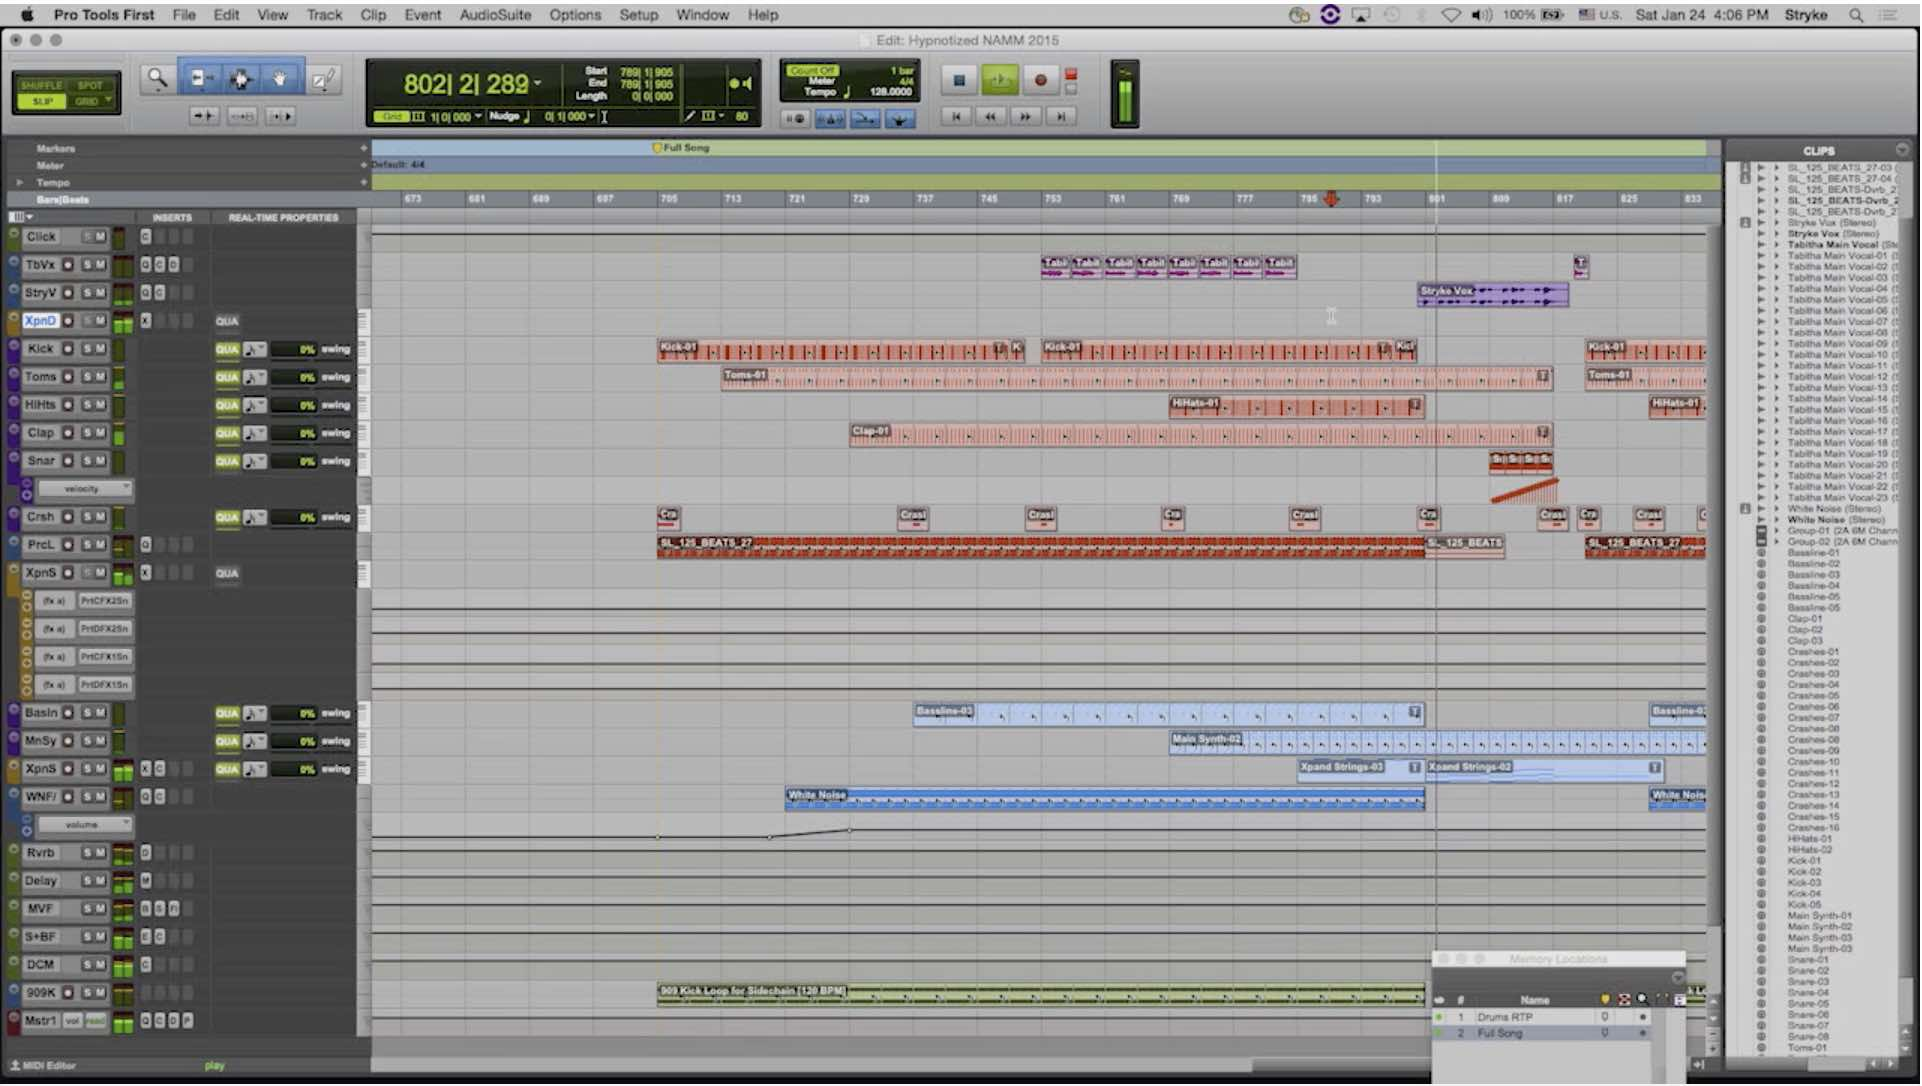 Pro Tools First Main GUI